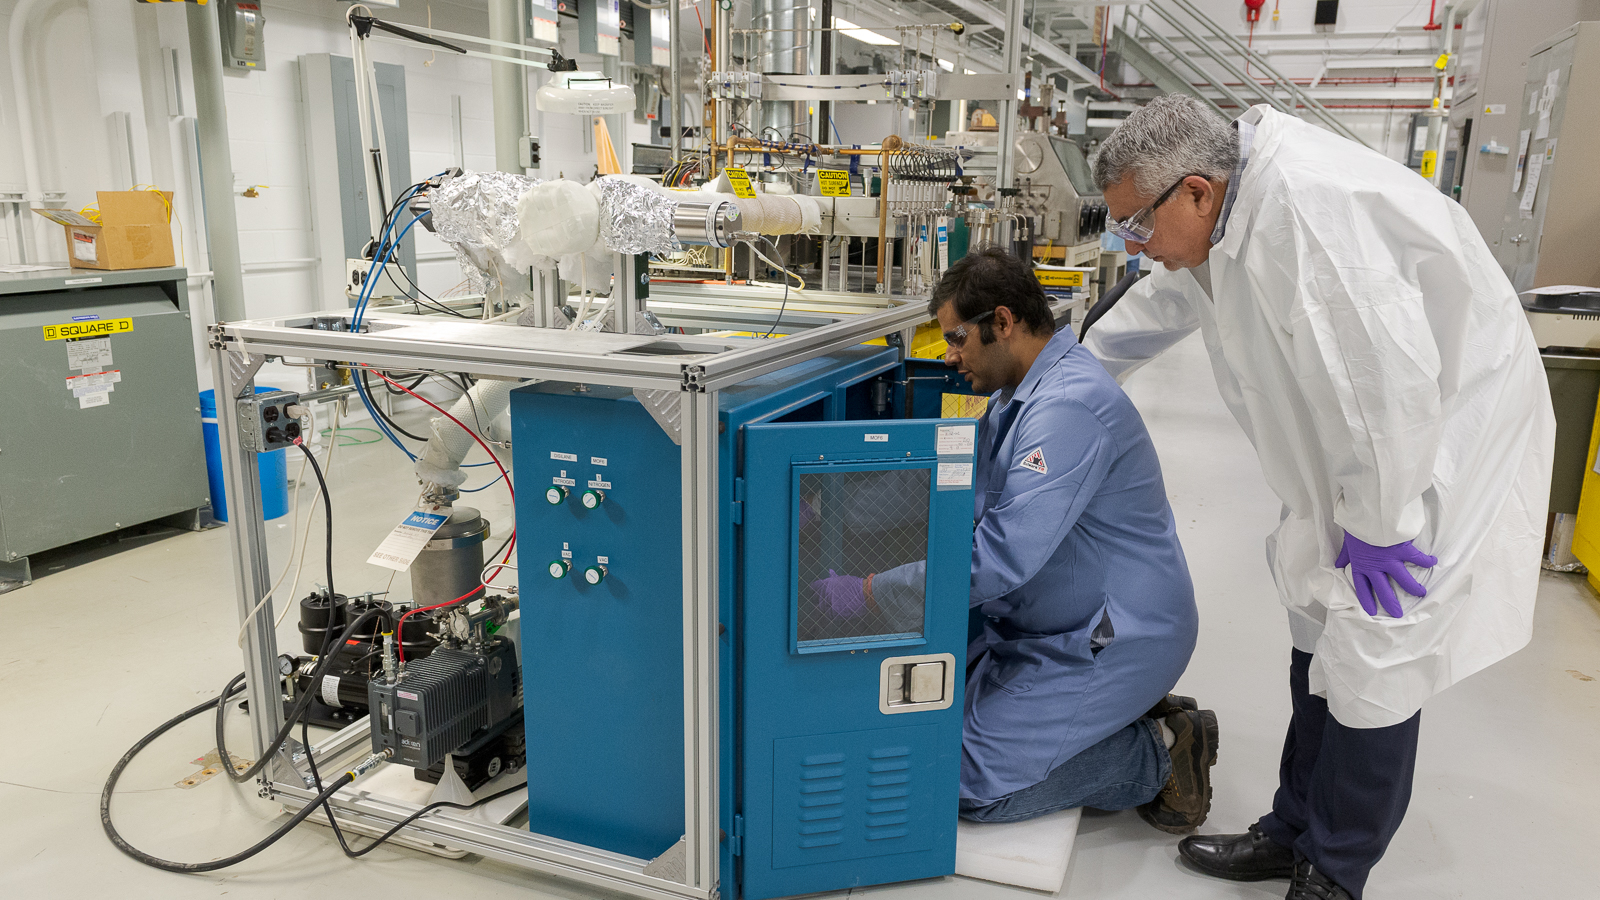 Here, Bhattacharya and Yacout adjust lab equipment to deposit ALD-based nuclear coatings. (Image by Argonne National Laboratory.)